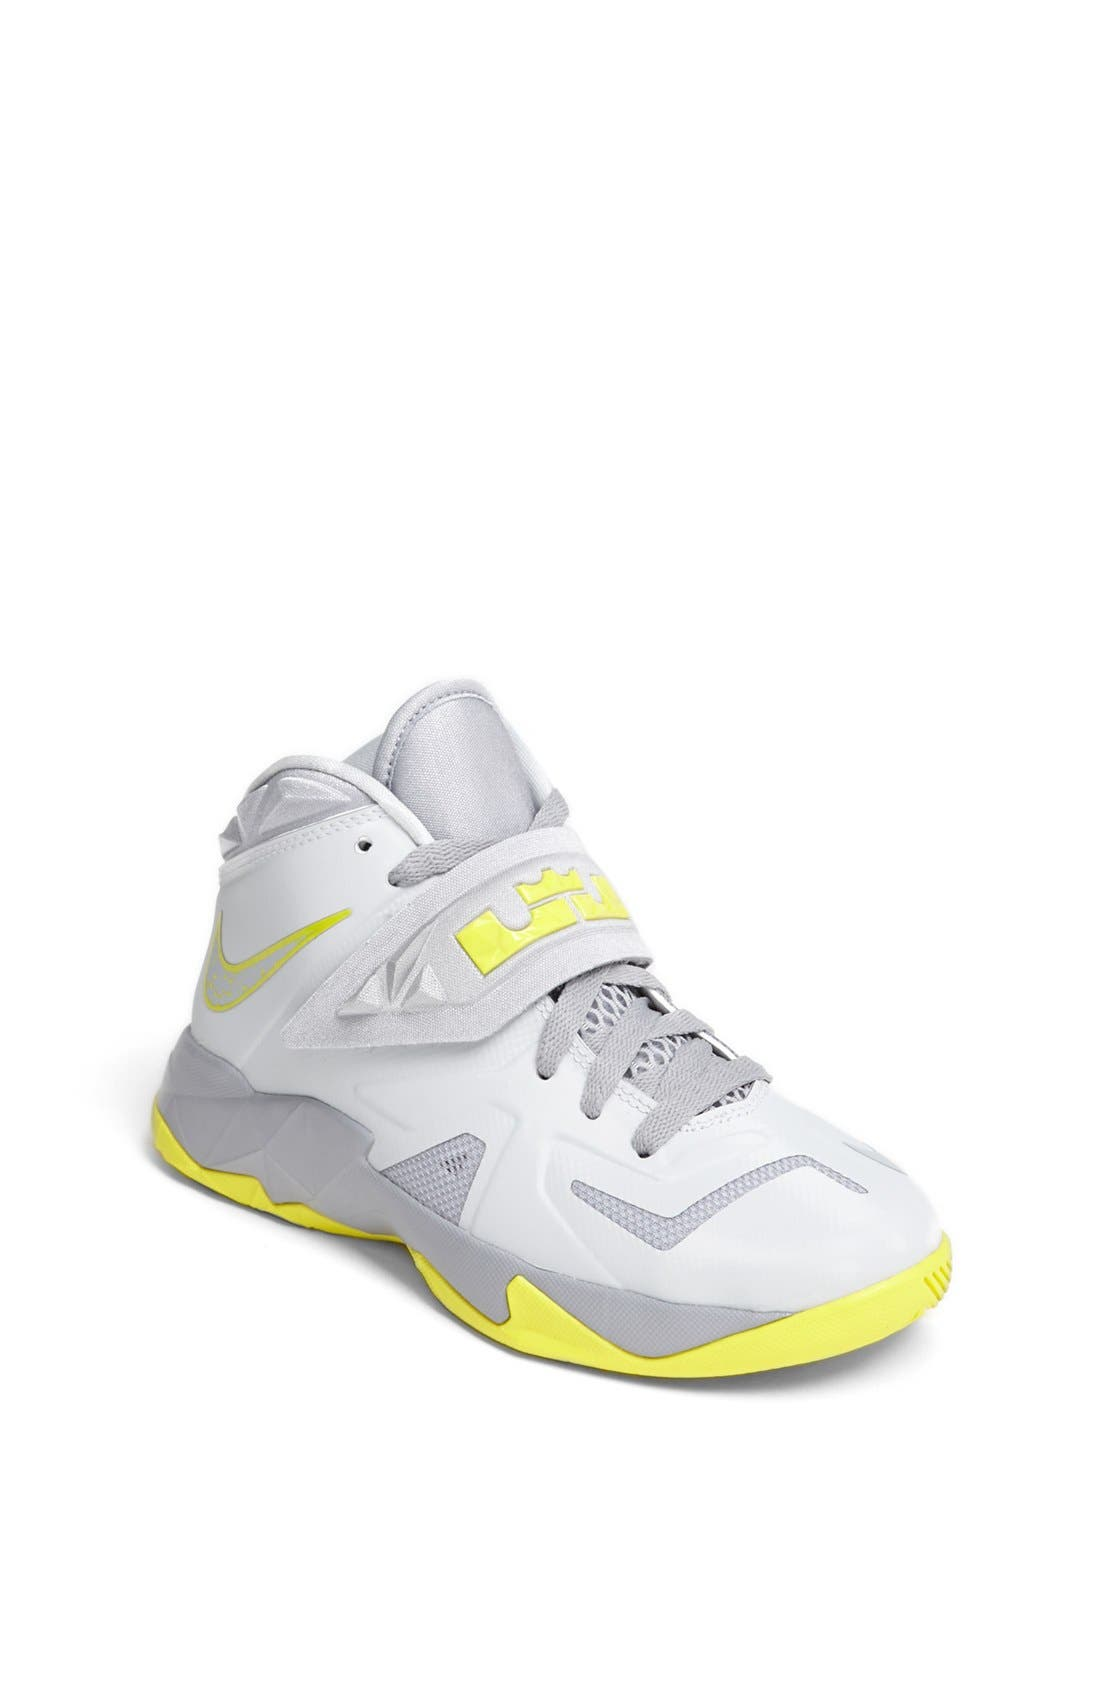 Alternate Image 1 Selected - Nike 'LeBron Zoom Soldier VII' Basketball Shoe (Big Kid)